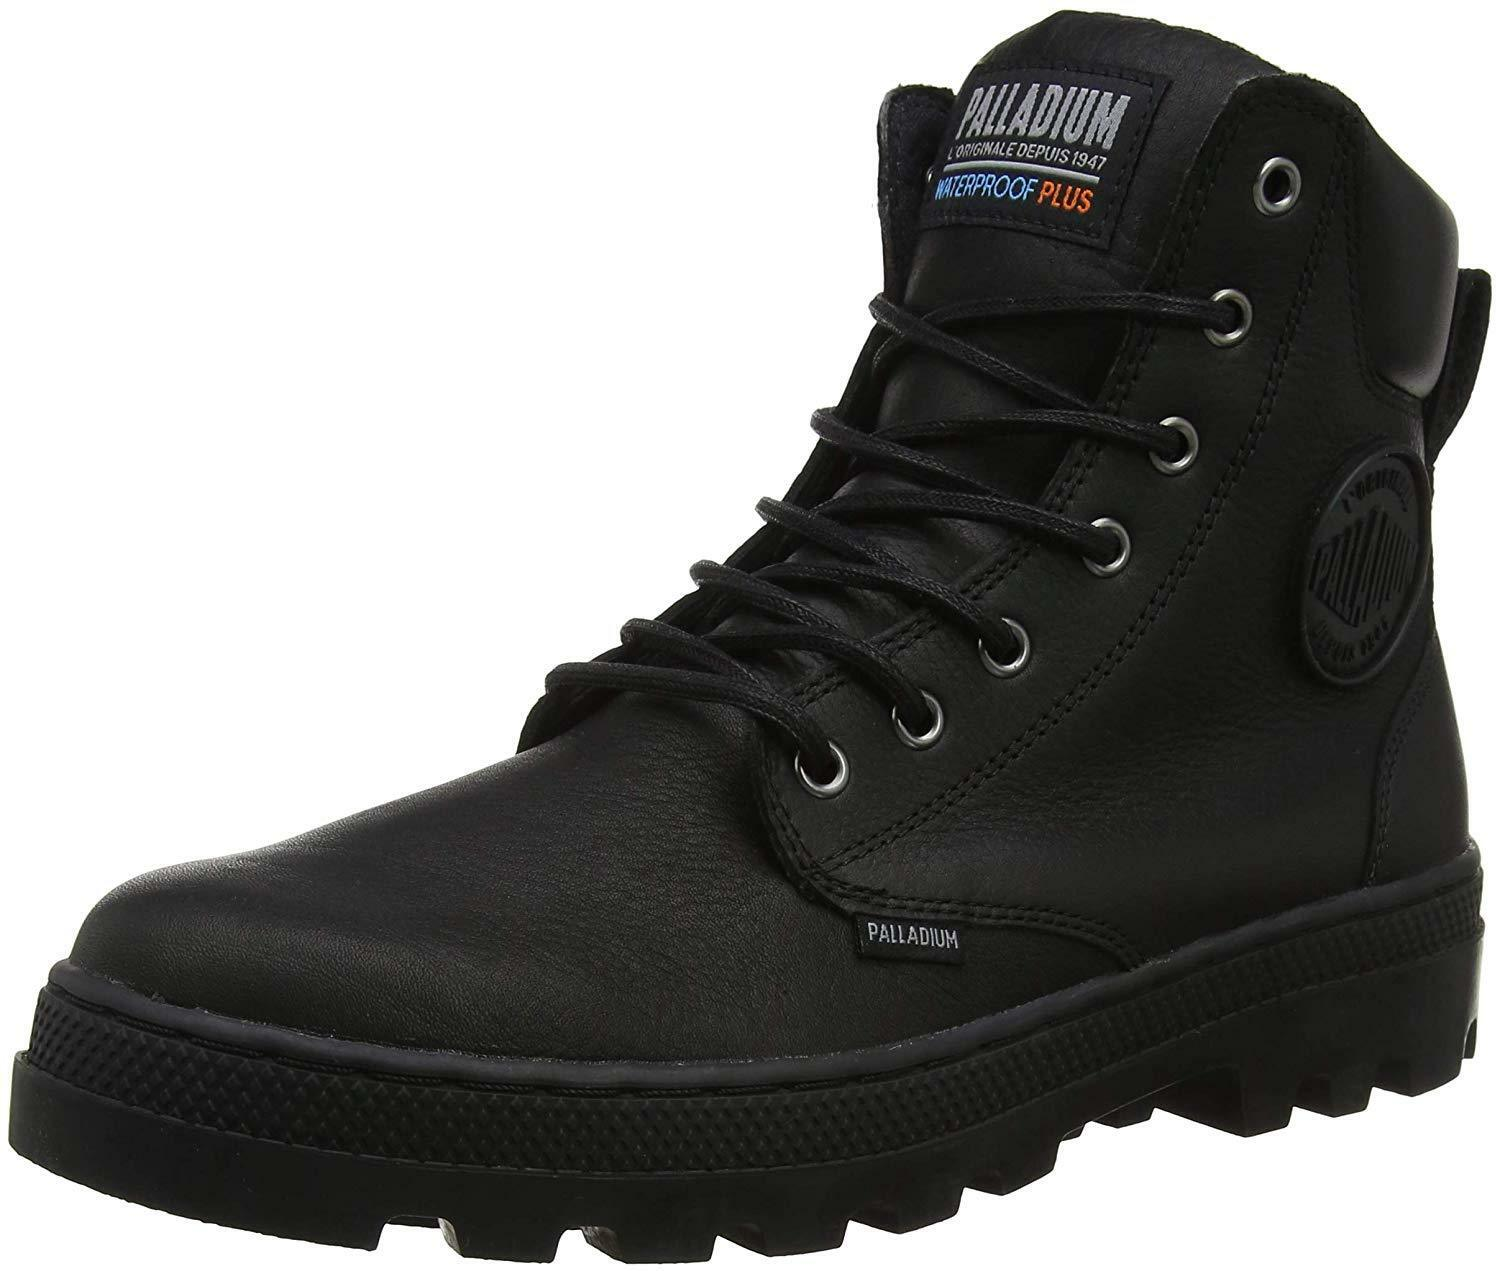 Men's Palladium Boots WaterProof Sport Cuff Pallabosse SC WP Black Leather